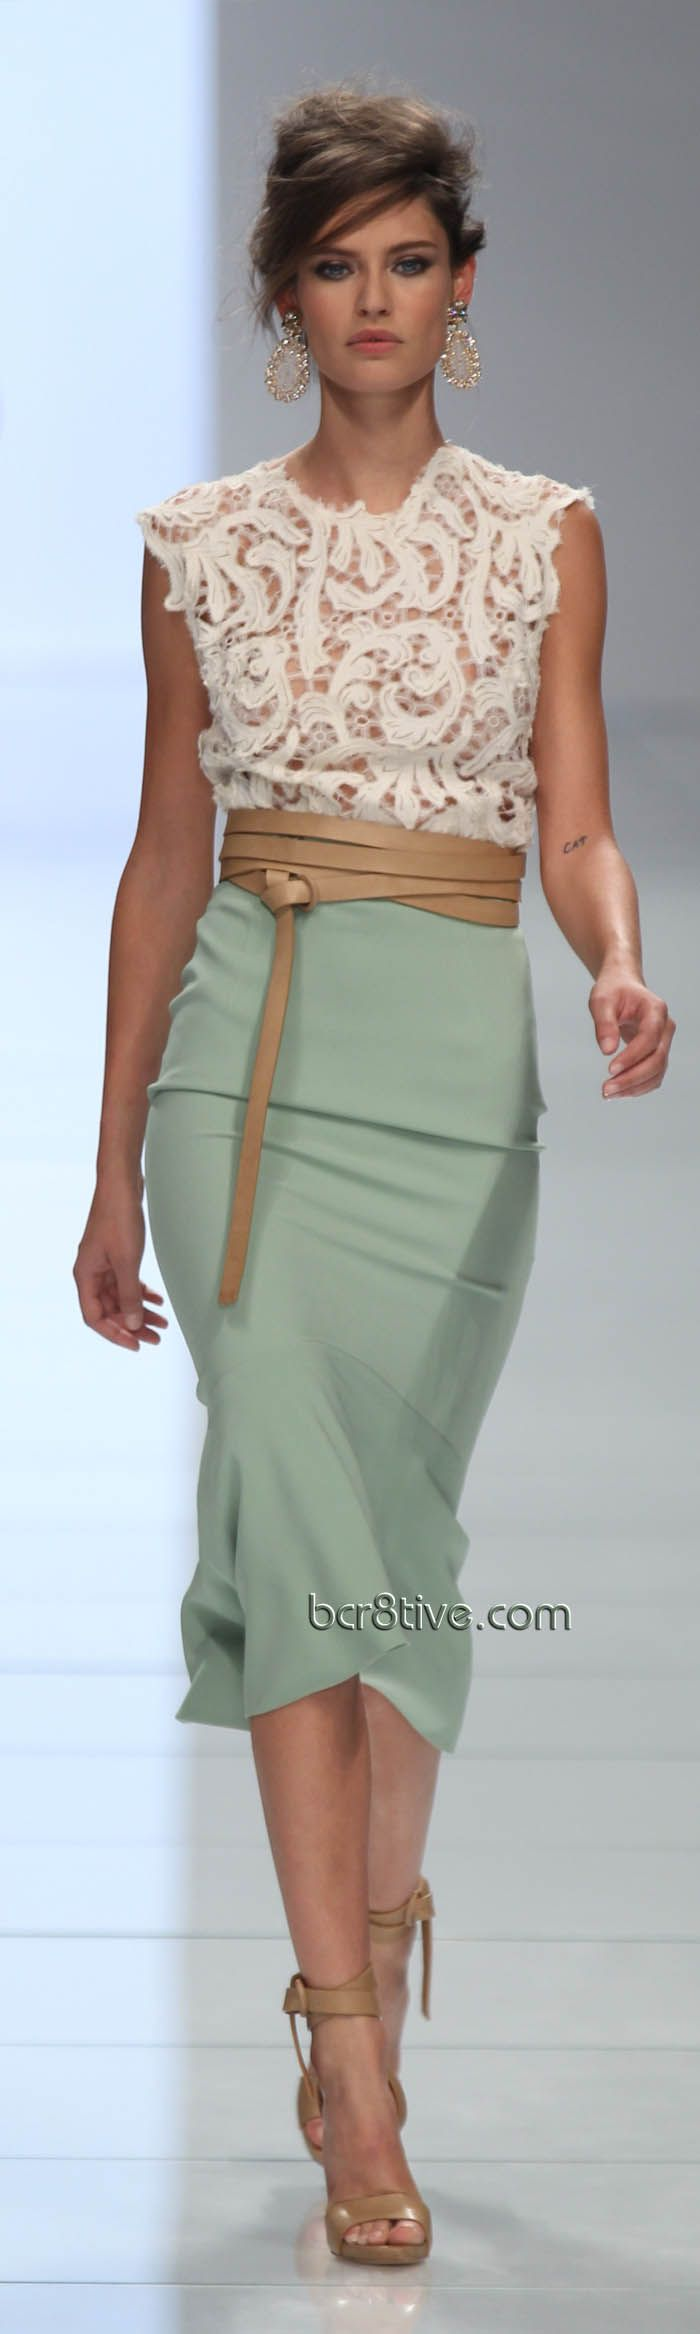 Ermanno Scervino love the mint and nude and guess what?  The CAbi Spring 2013 line includes these minty fresh ideas - the New Pencil Skirt in Jordan Almond and the Front and Center too.